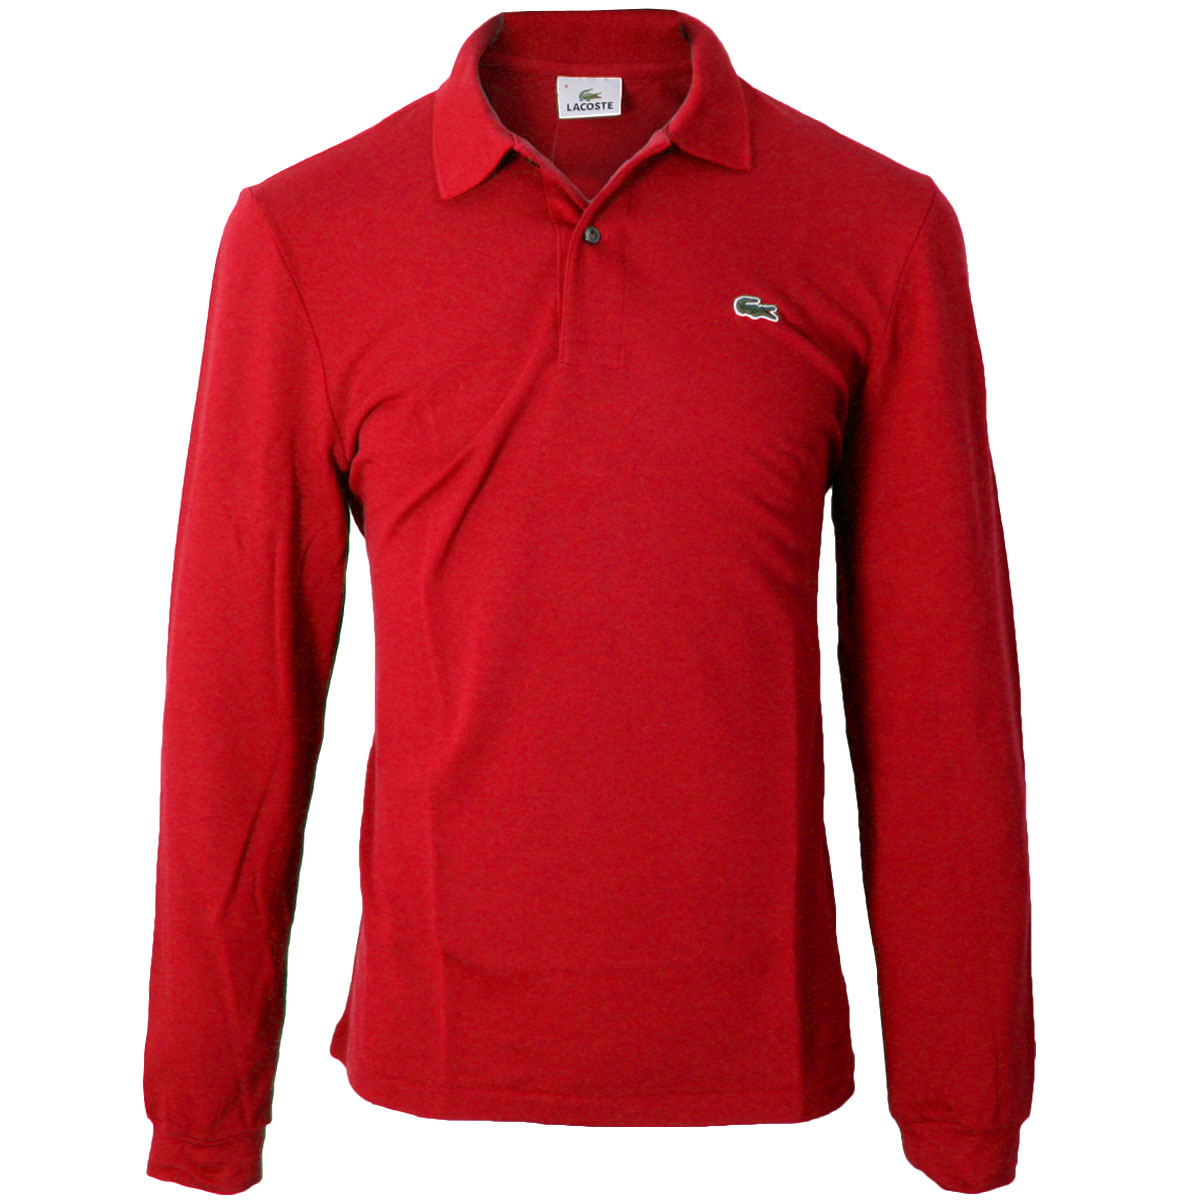 6fa9eca18c8 Lacoste Rouge Red Long-sleeved Polo Shirt 4xl